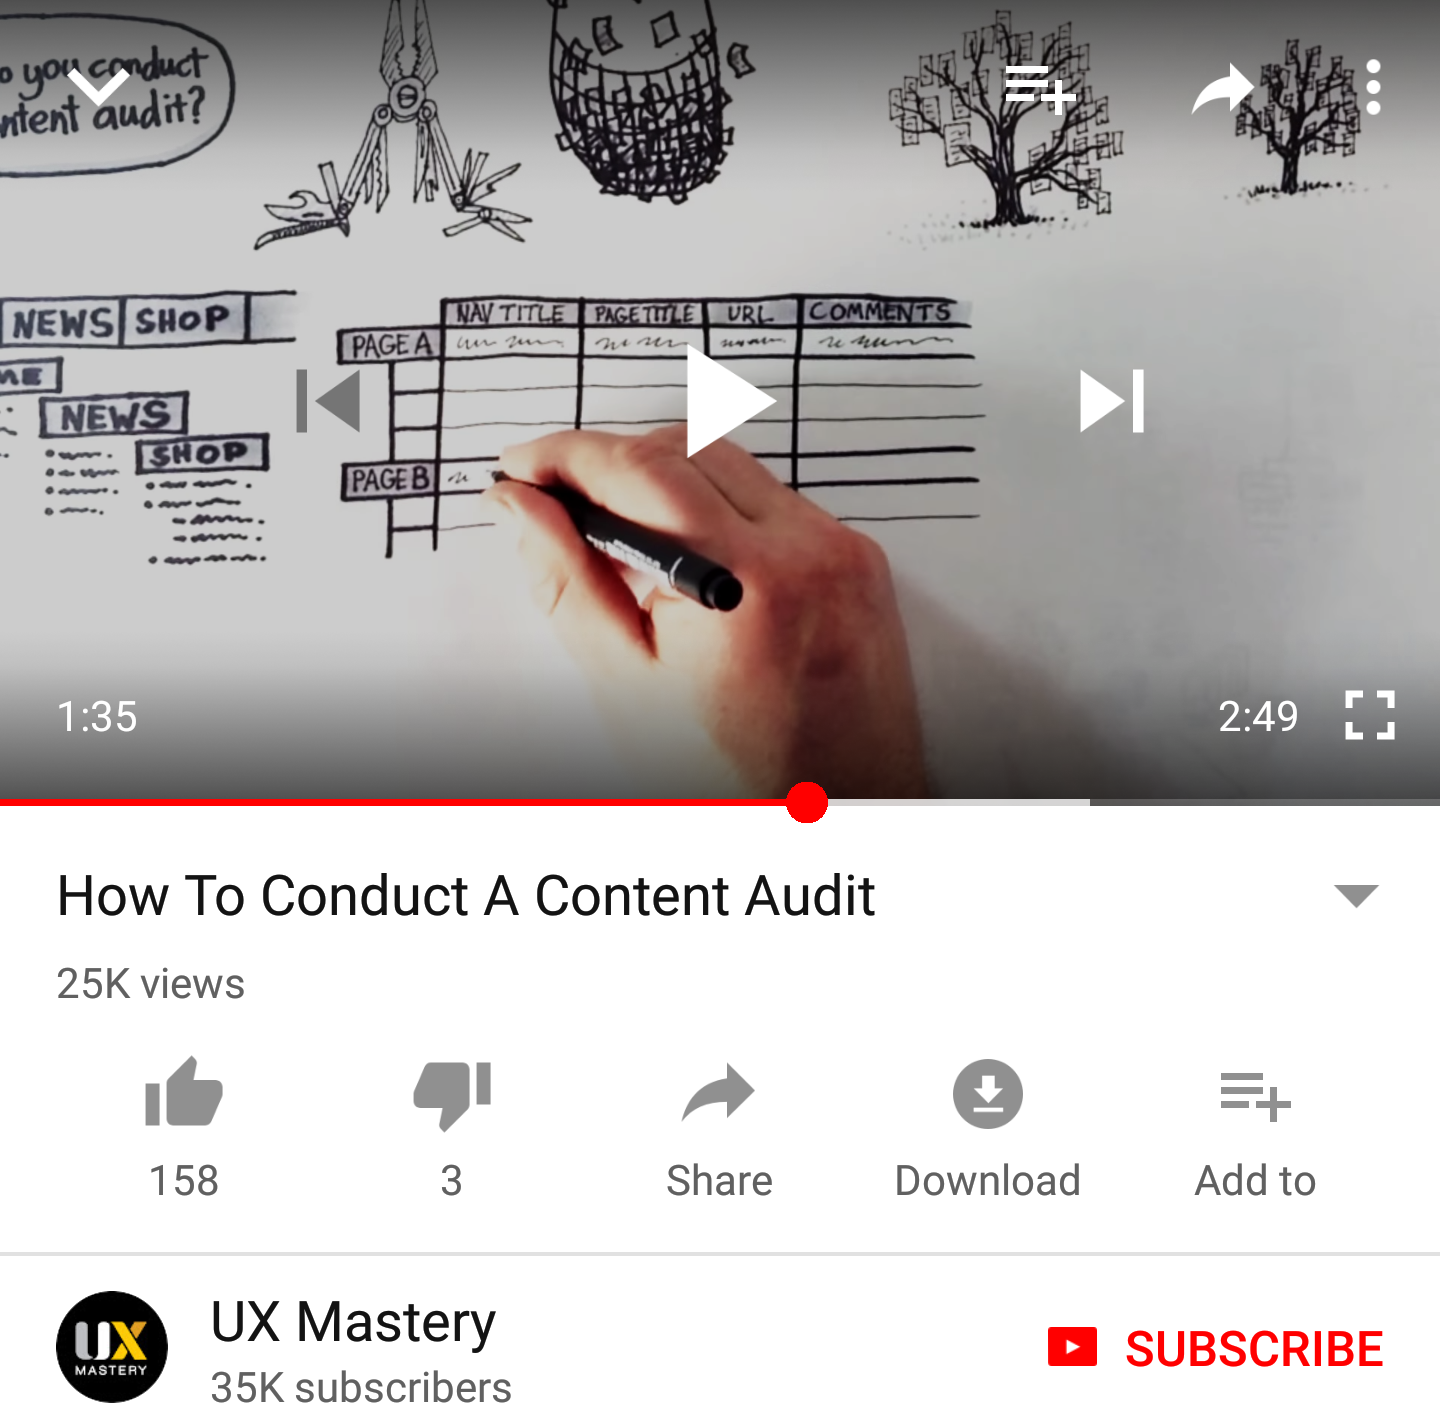 Video: ECM In Under 3 Minutes, How to Conduct a Content Audit - Valuable content for the ECM crowd. (YouTube)